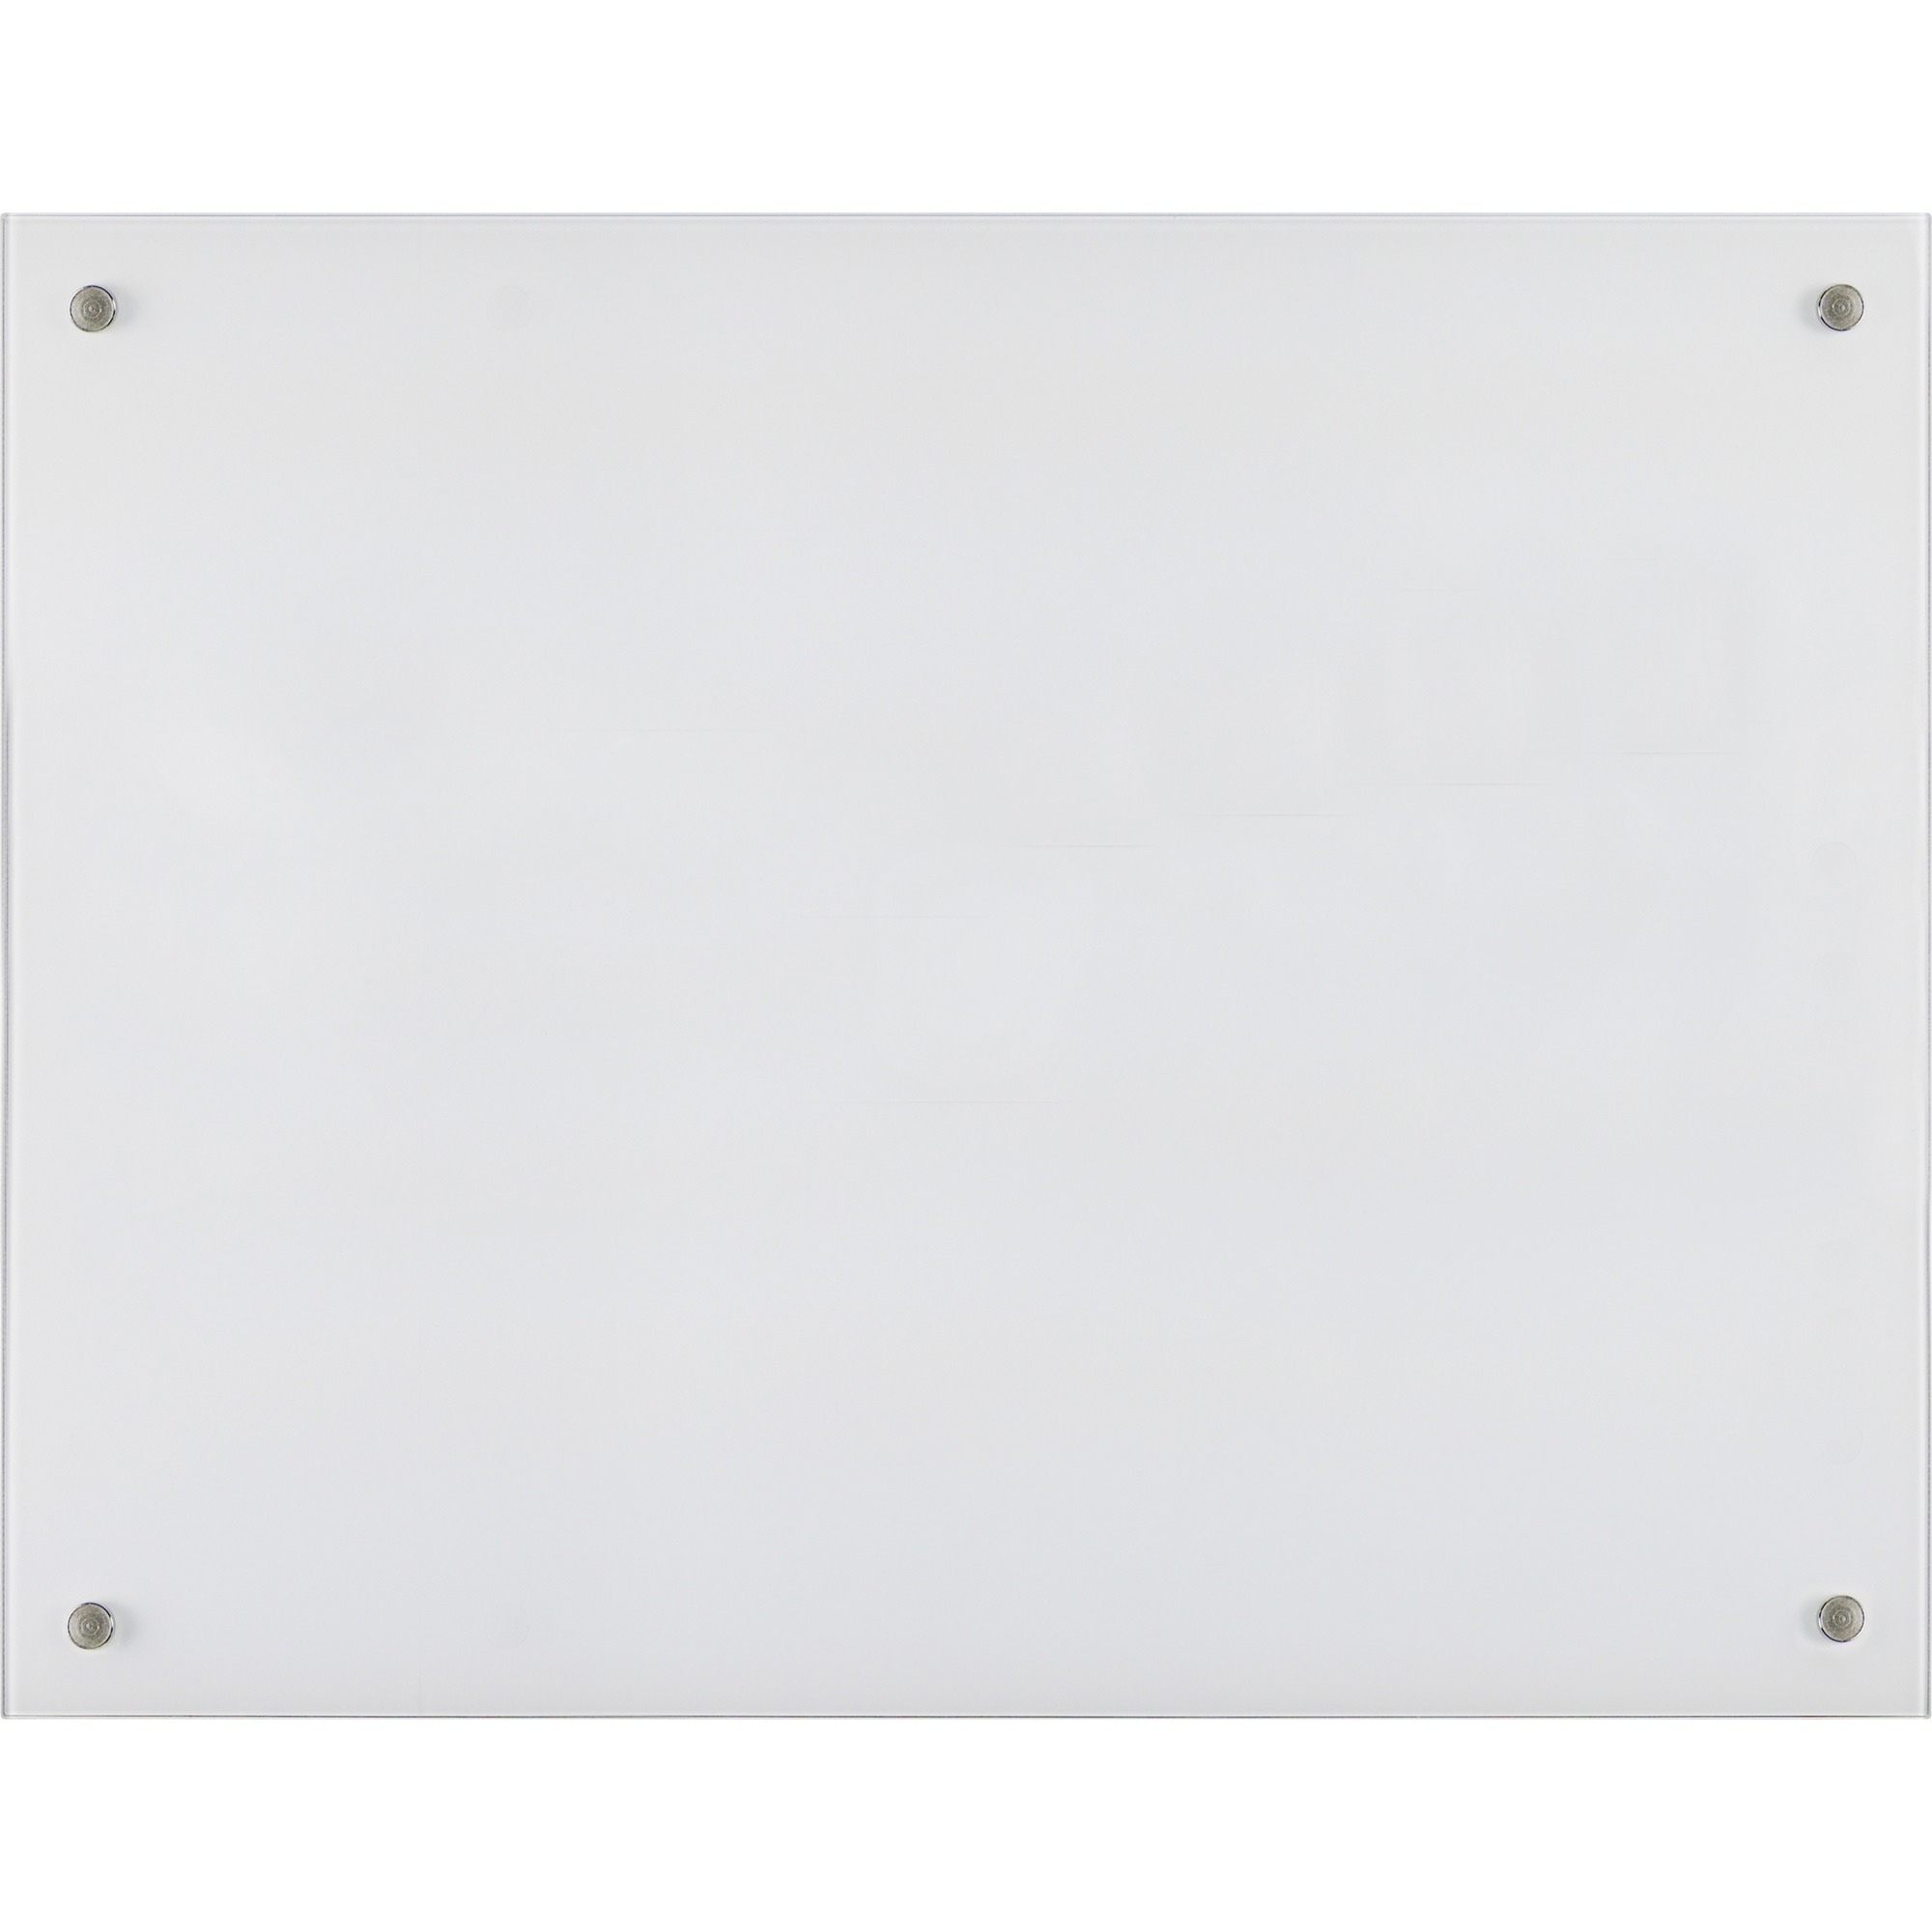 Lorell Dry-erase Glass Board - 48 (4 Ft) Width X 36 (3 Ft) Height - Frost Glass Surface - Rectangle - Mount - 1 Each